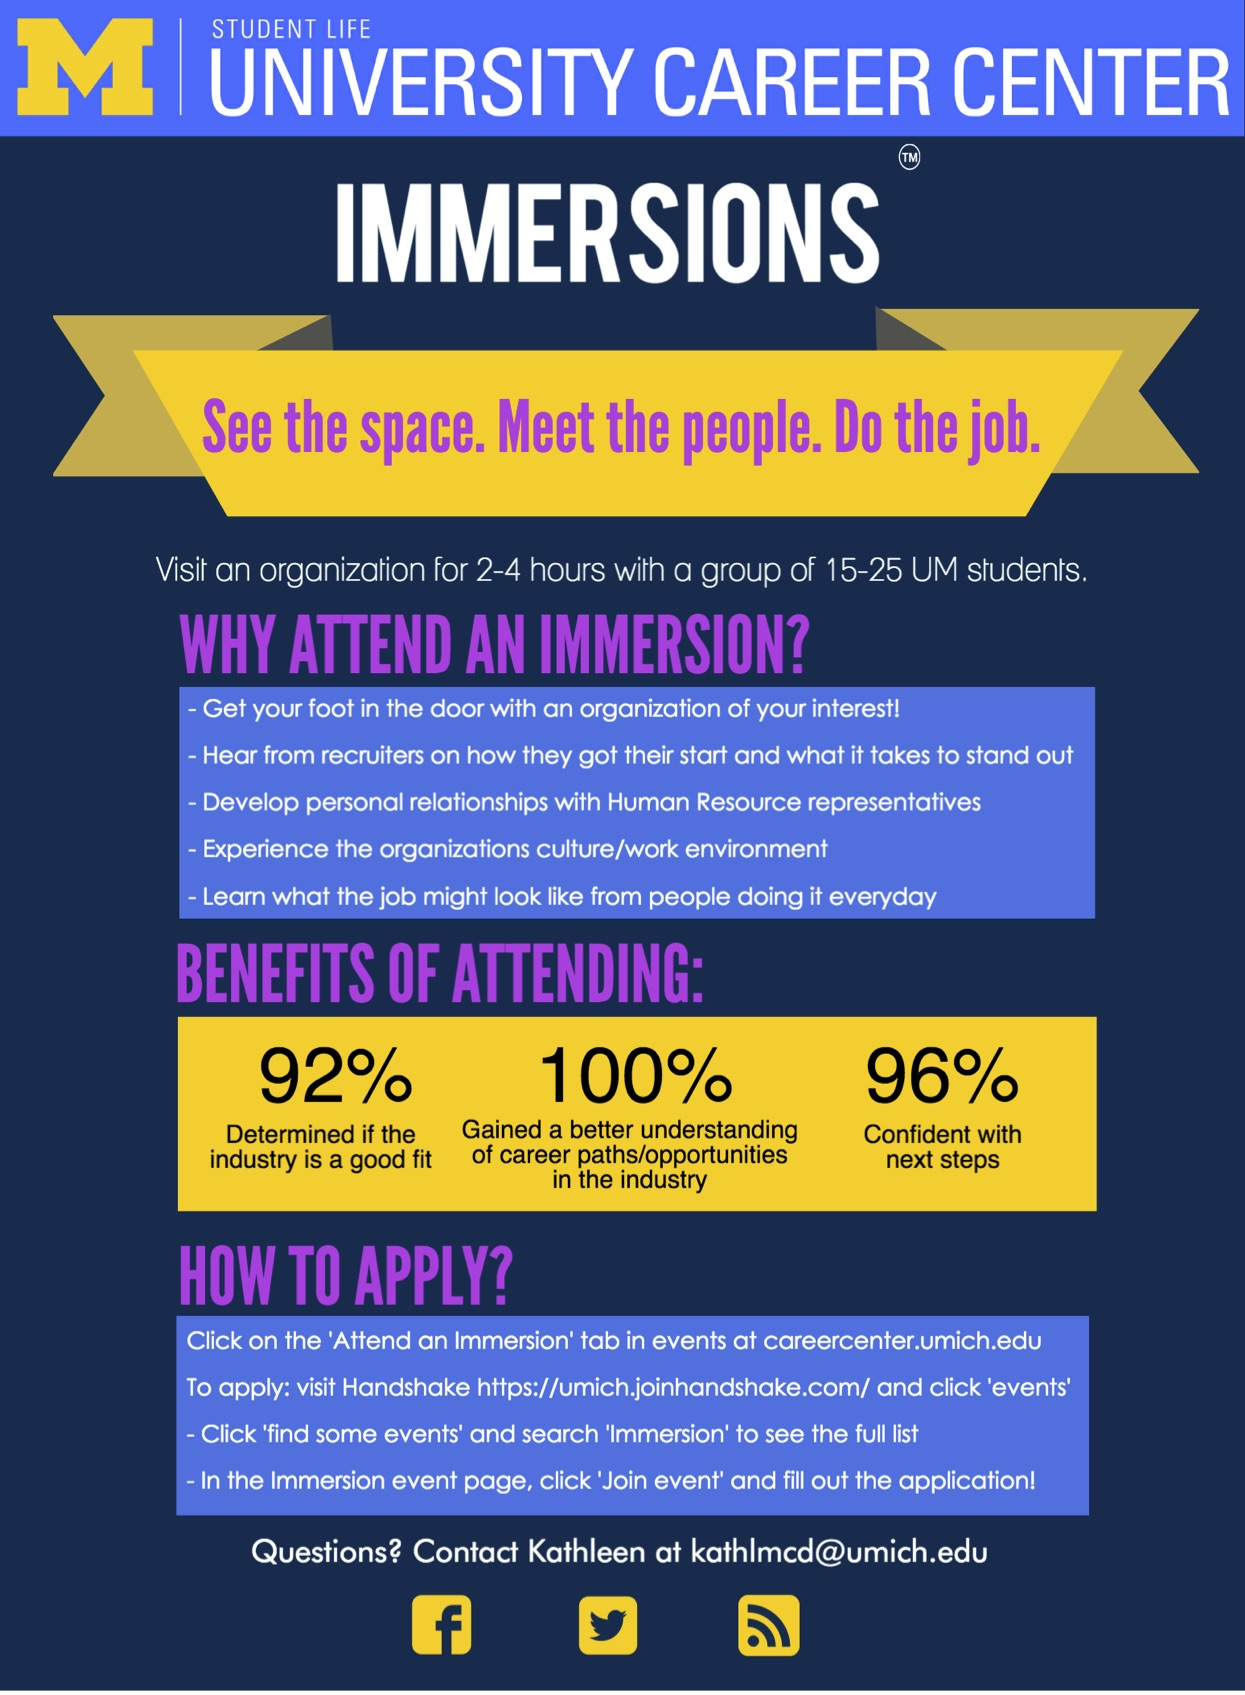 Immersions: See the space, meet the people, do the job. Visit an organization for 2-4 hours with a group of 15-25 UM students. Why attend an Immersion? Get your foot in the door with an organization of your interest! Hear from recruiters on how they got their start and what it takes to stand out. Develop personal relationships with Human Resource representatives. Experience the organizations culture/work environment. Learn what the job might look like from people doing it everyday. Benefits of attending: 92% determined if the industry is a good fit. 100% gained a better understanding of career paths/opportunities in the industry. 96% are confident with their next steps. How to apply? click on the 'attend an Immersion' tab in events at careercenter.umich.edu. To apply: visit Handshake and click 'events'. Click 'Find some events' and search Immersion to see the full list. In the Immersion event page, click 'join event' and fill out the application! Questions? Contact Kathleen at kathlmcd@umich.edu